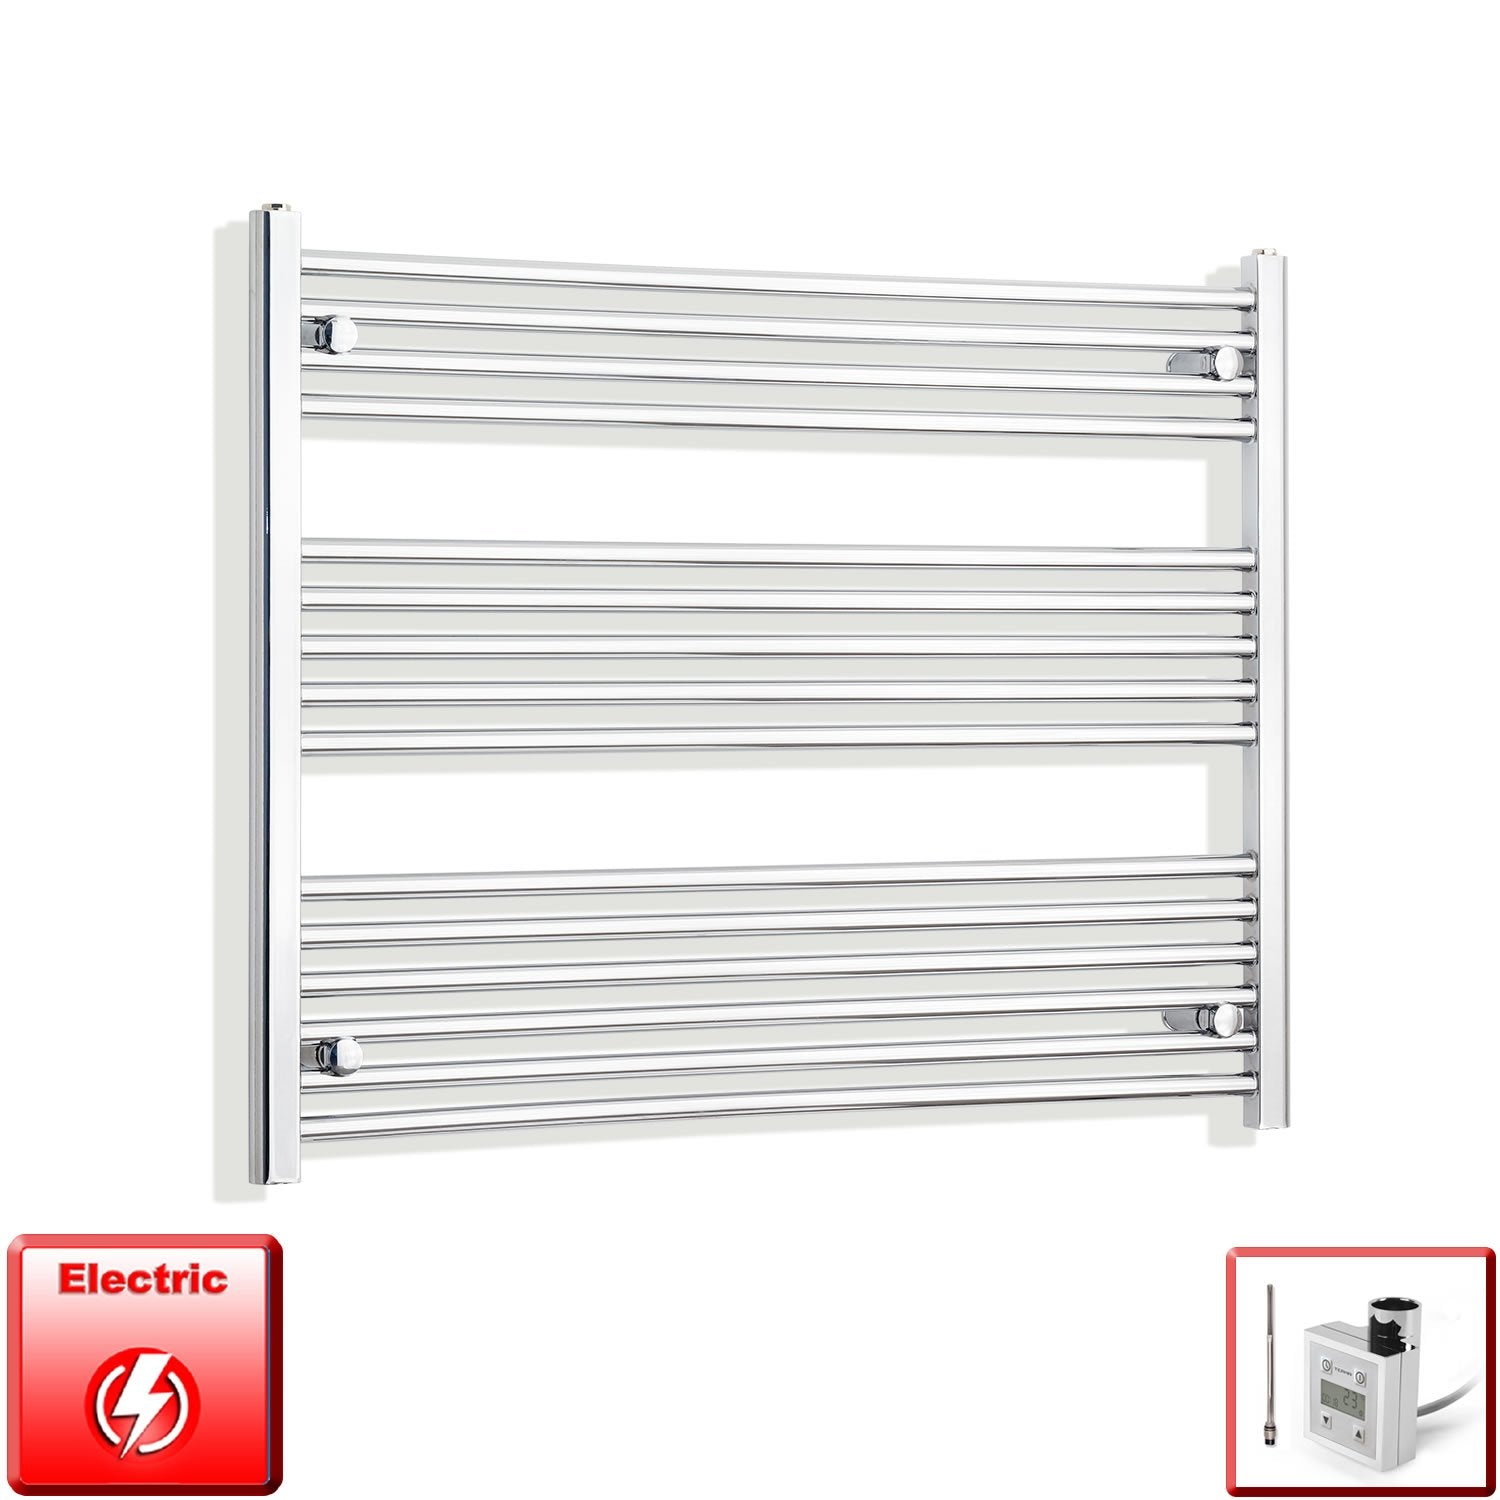 950mm Wide 800mm High Flat Chrome Pre-Filled Electric Heated Towel Rail Radiator HTR,KTX-3 Thermostatic Element